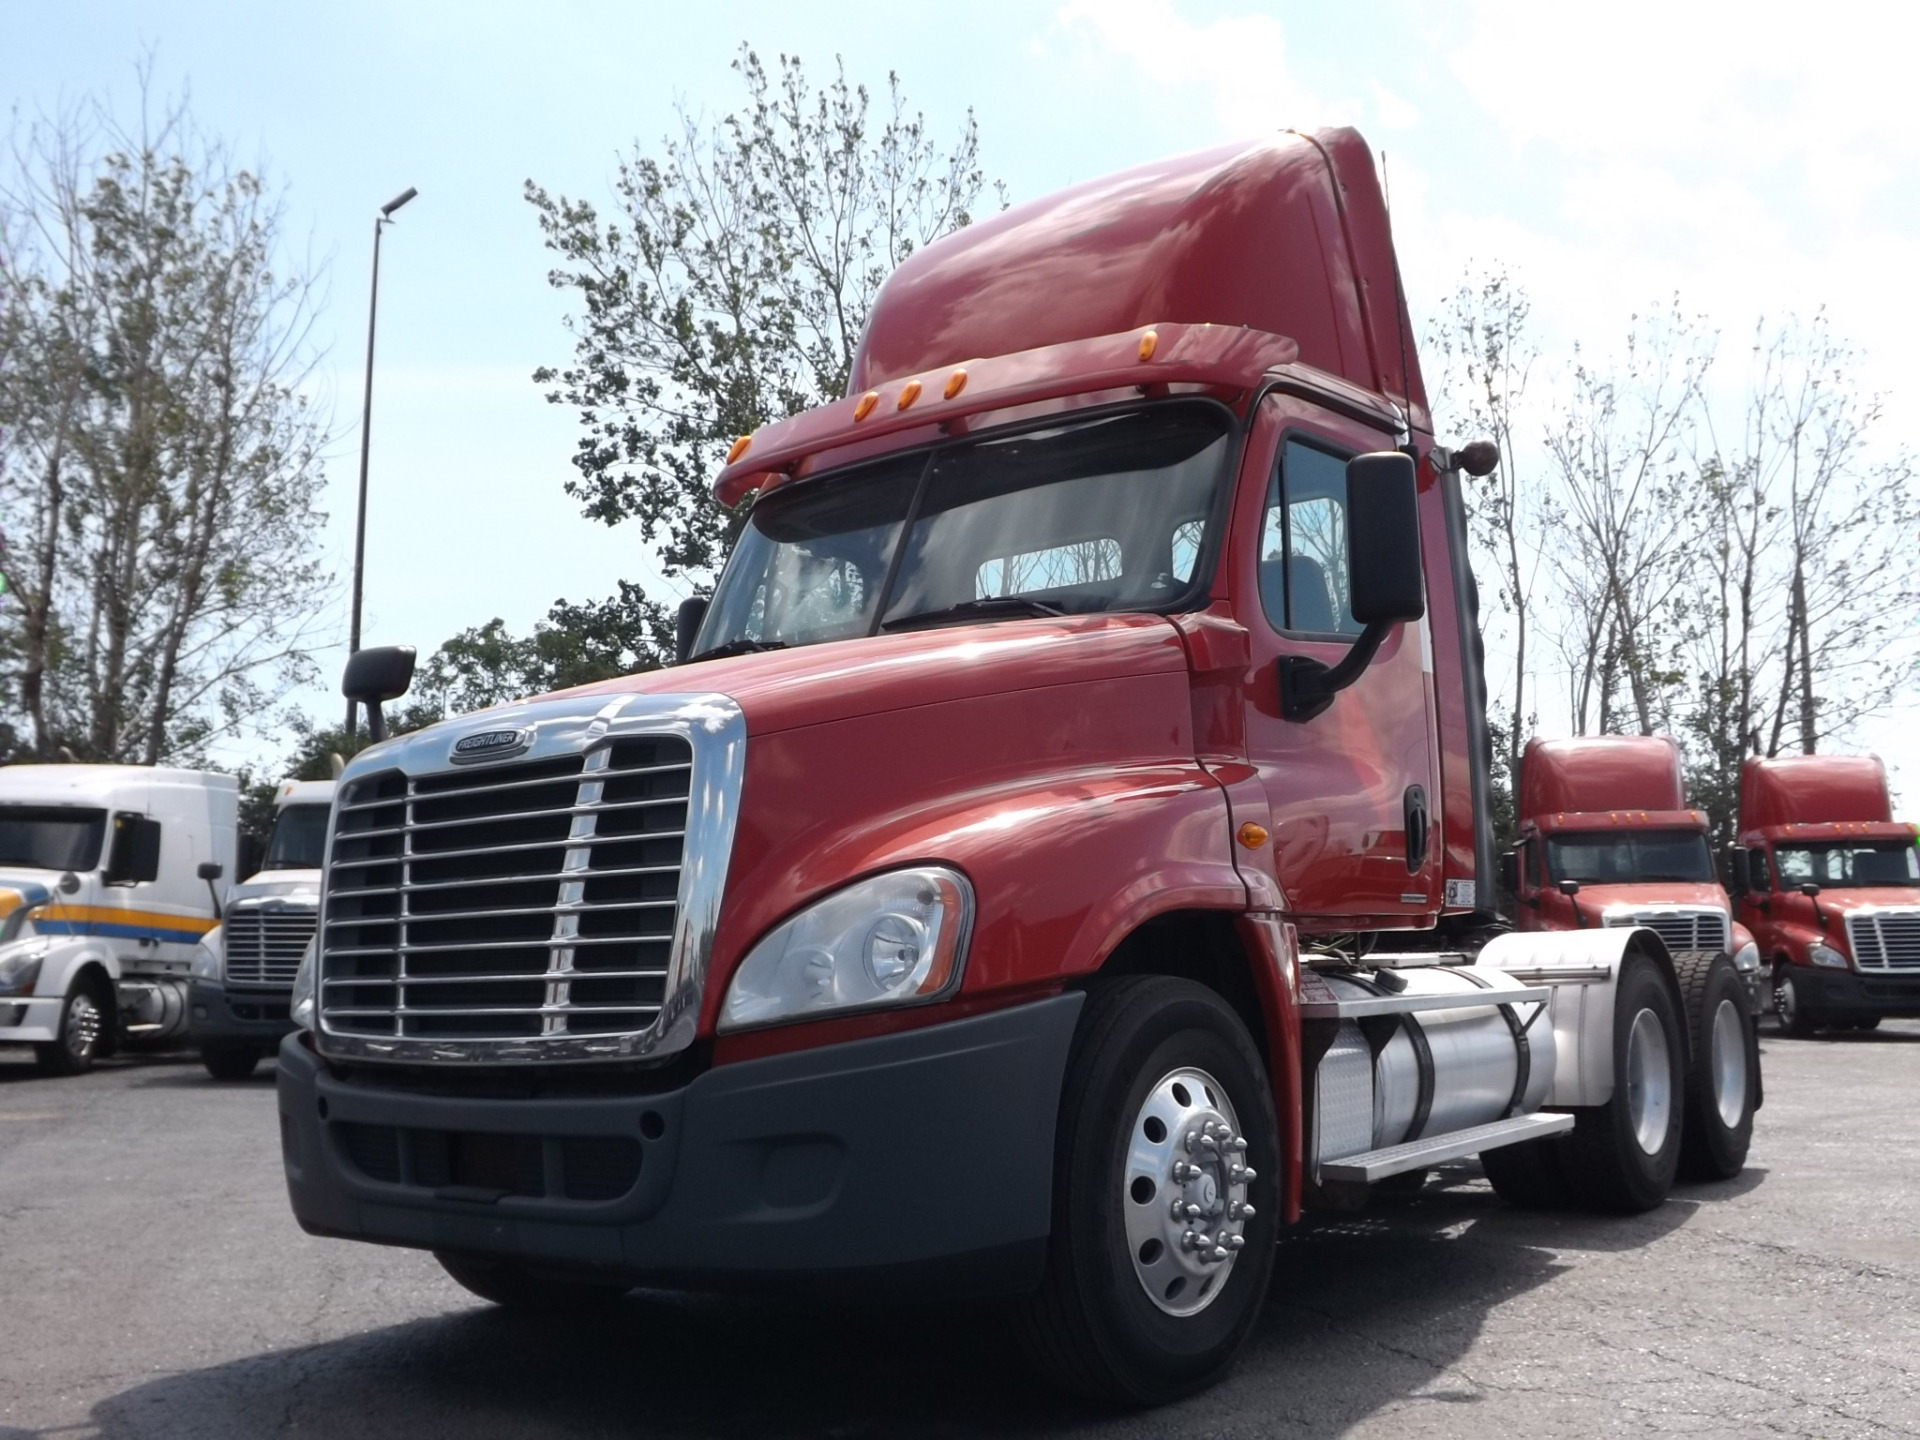 2012 Red Freightliner Cascadia Day Cab